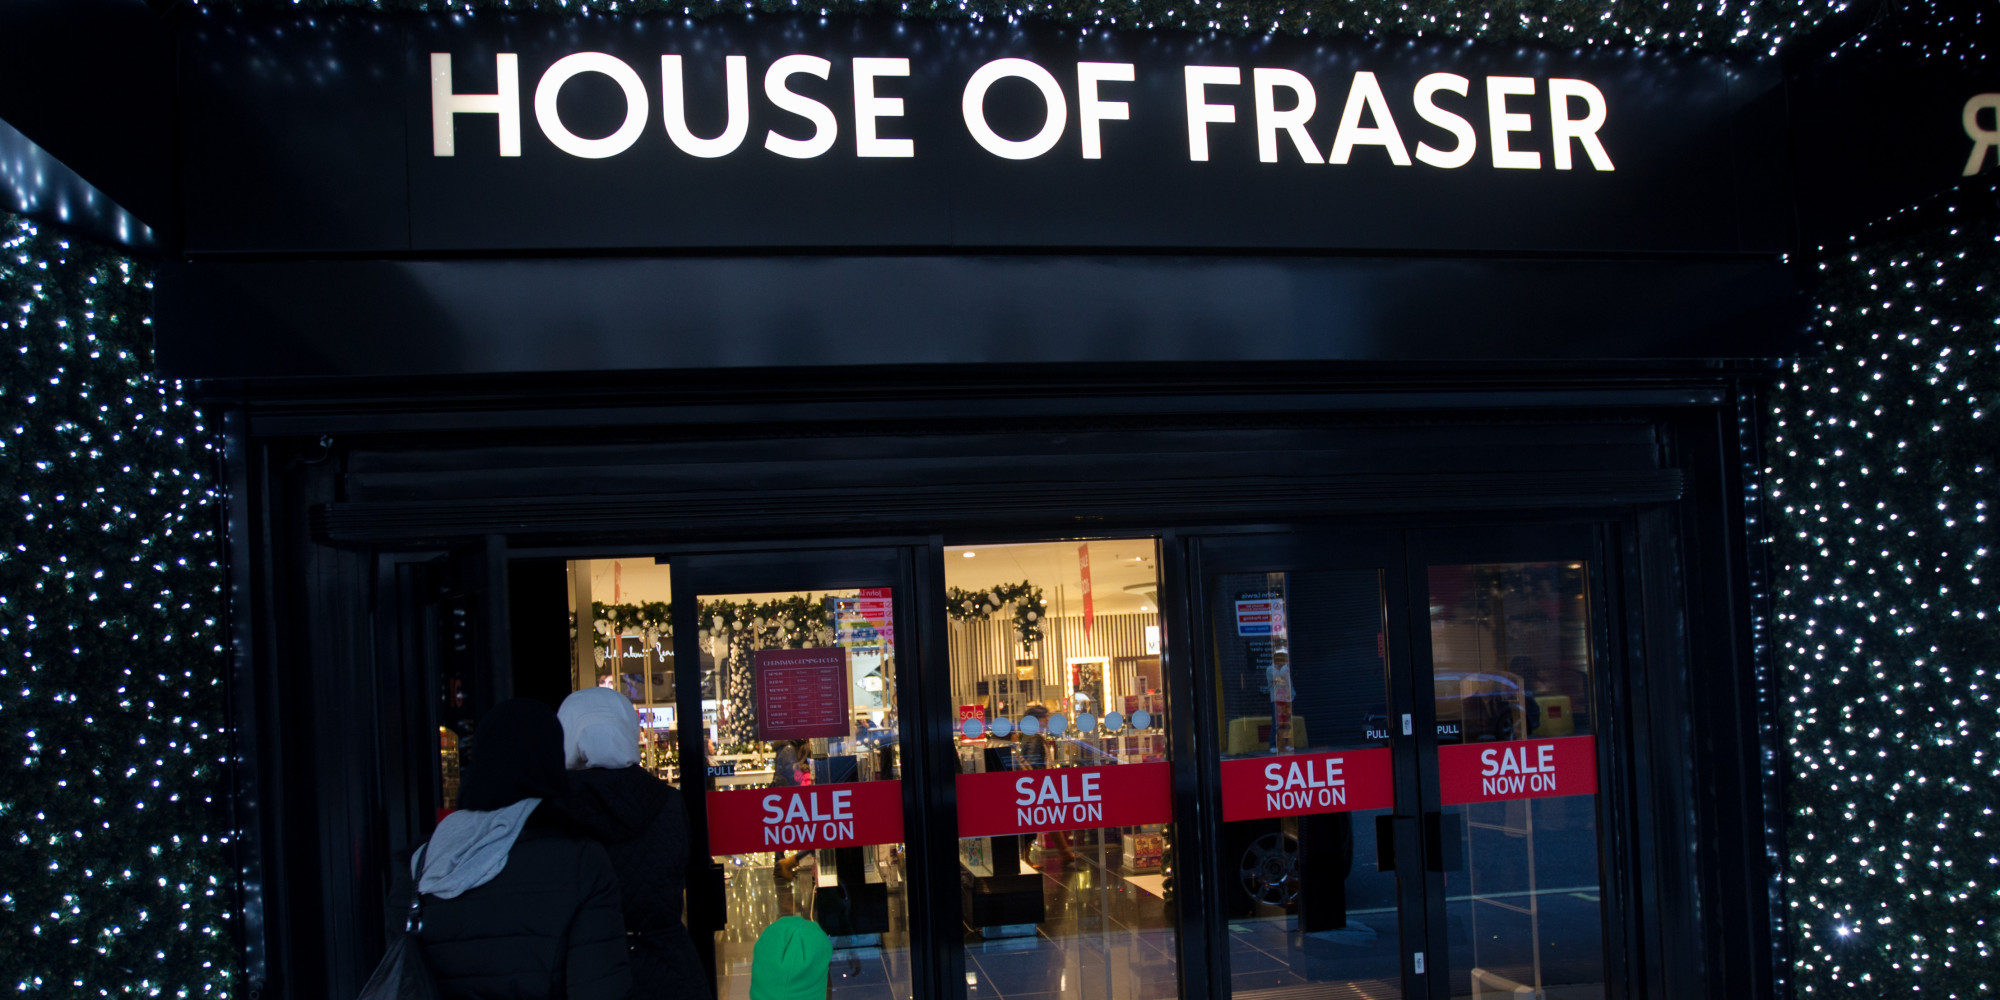 House of fraser bought out by chinese conglomerate for Housse of fraser